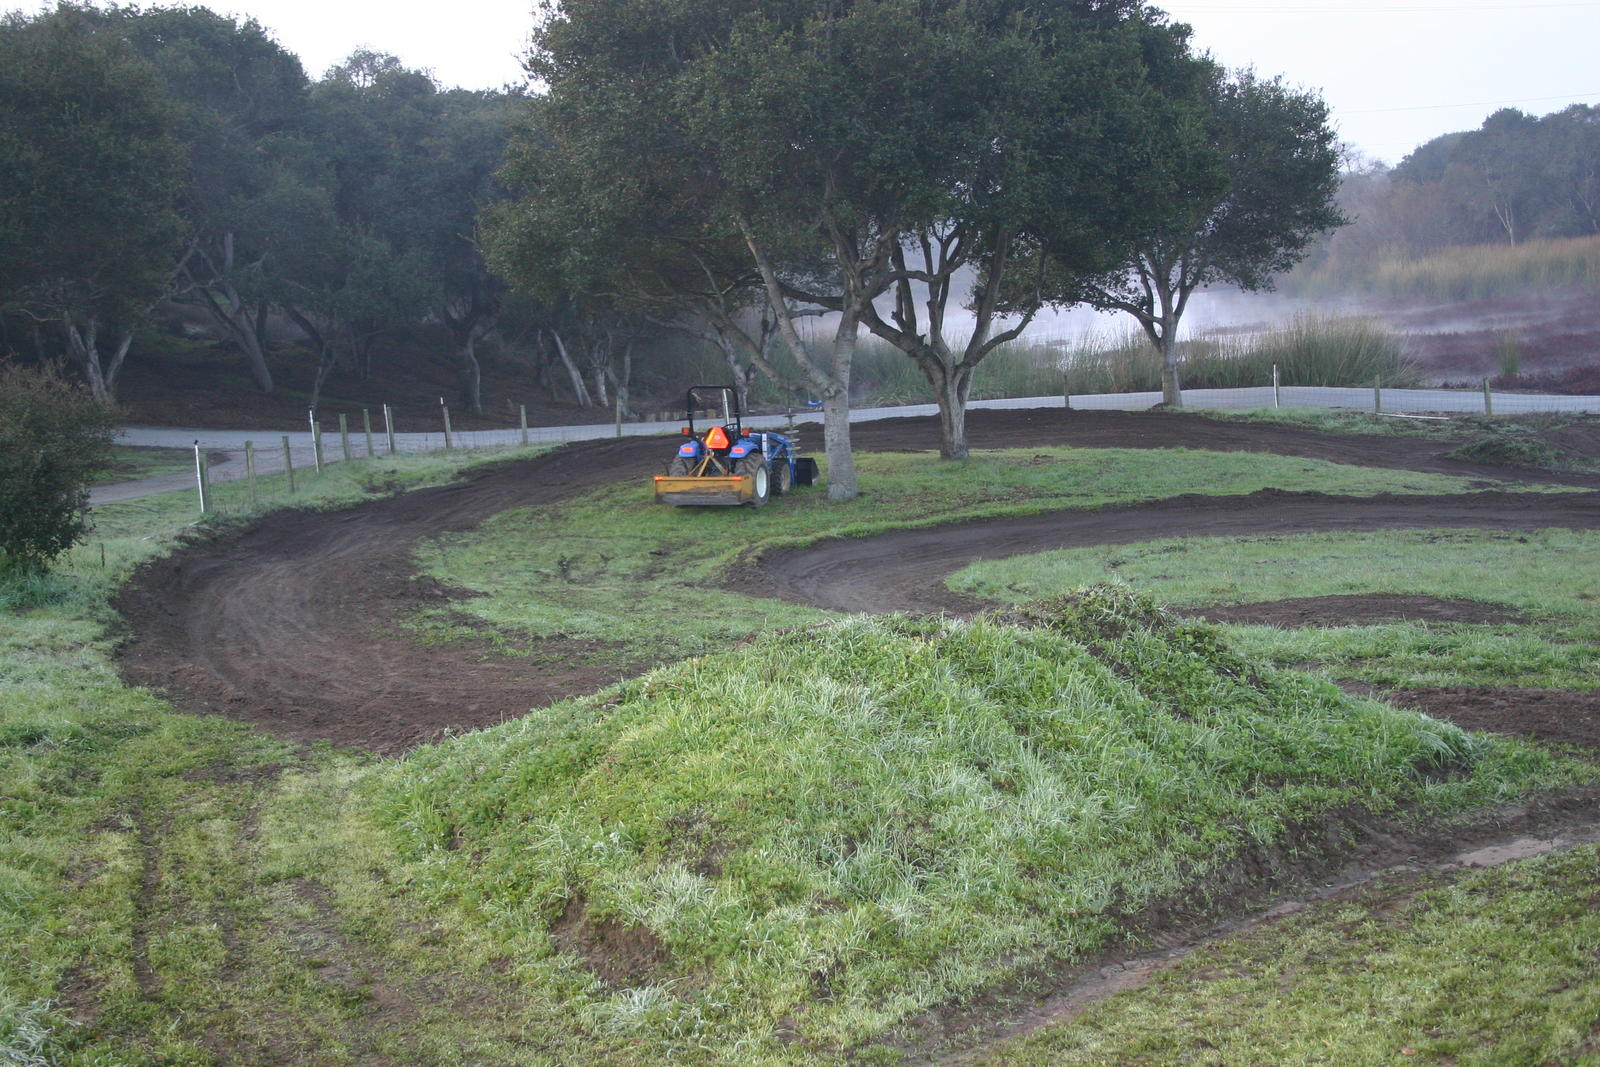 Looking for help with building motocross track san jose ...